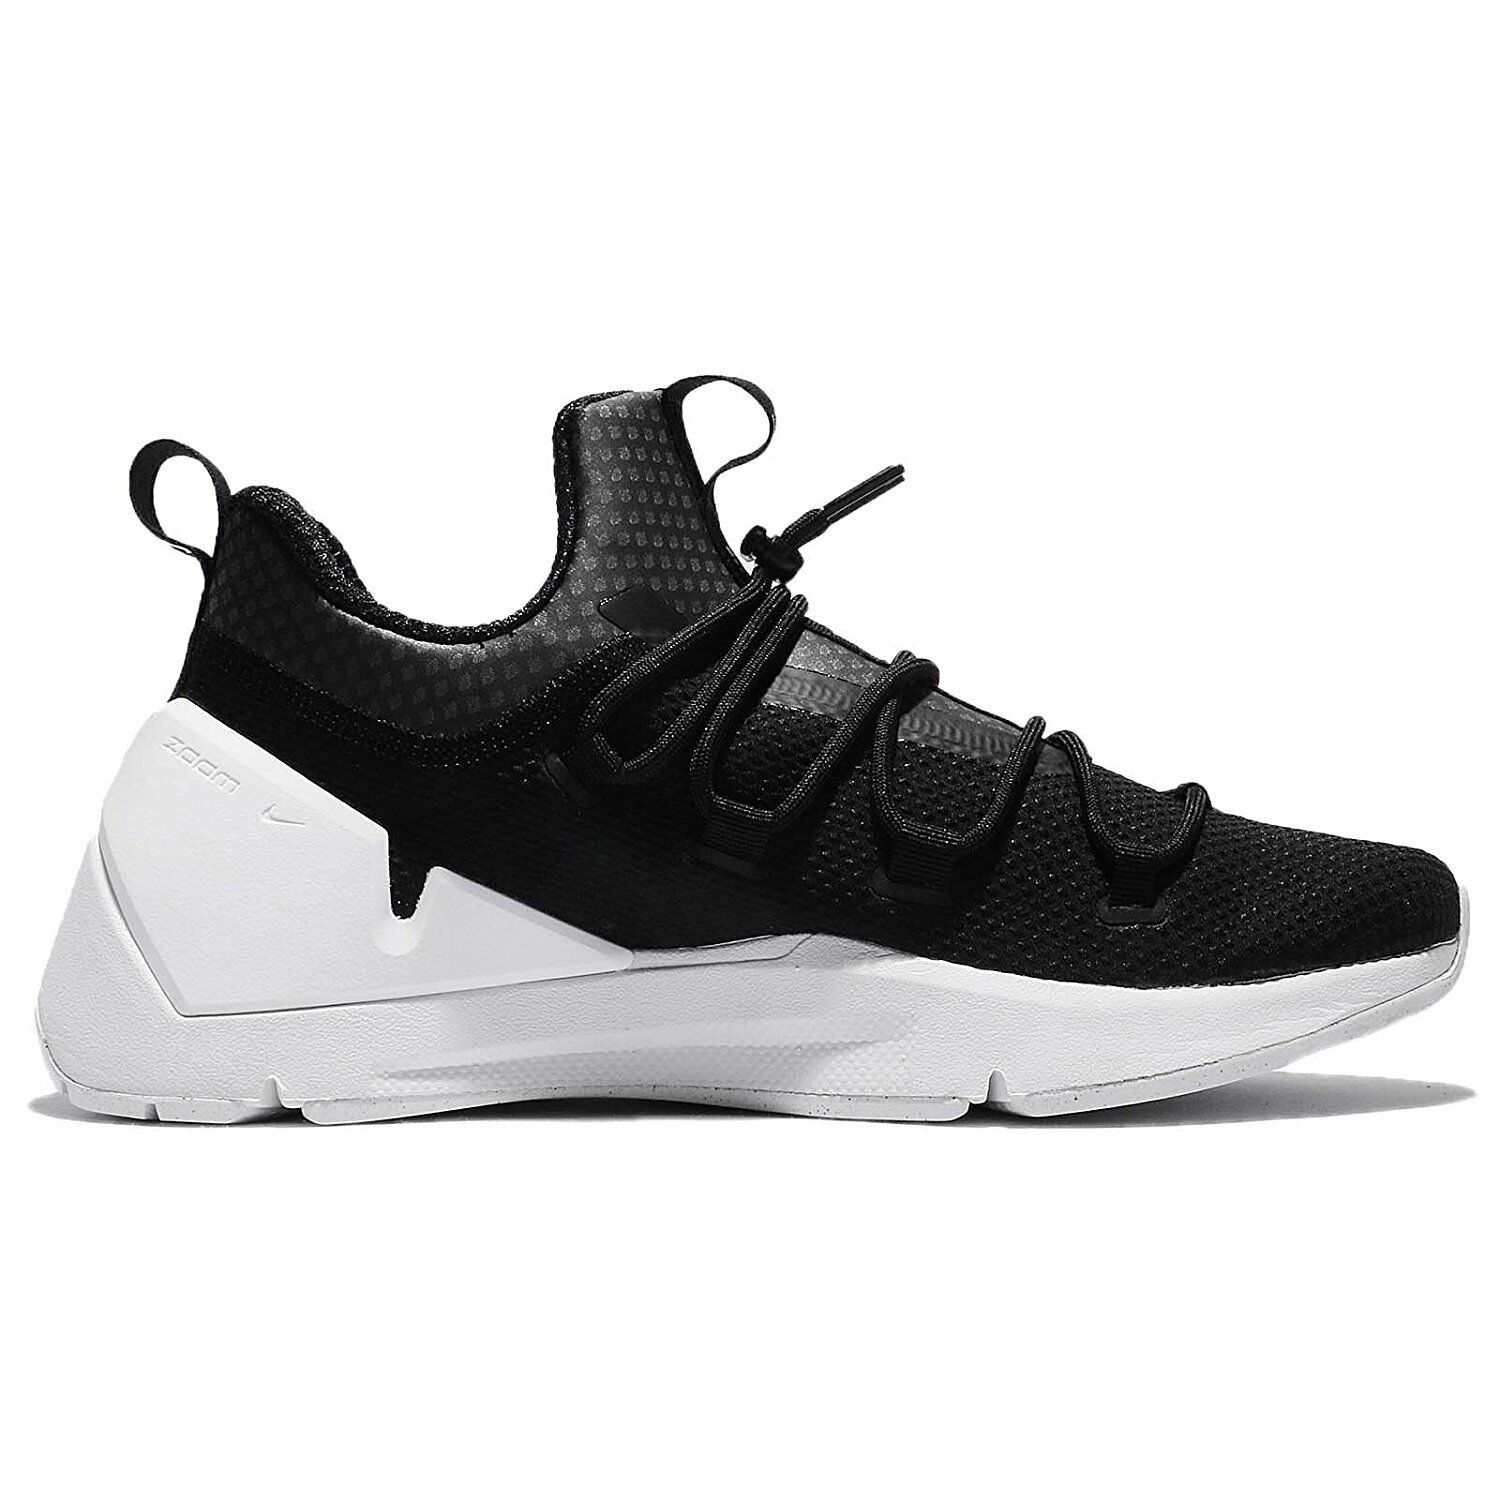 NIKE Men's Air Zoom Grade Basketball shoes 924465 001 Retail $130 Size 10 New